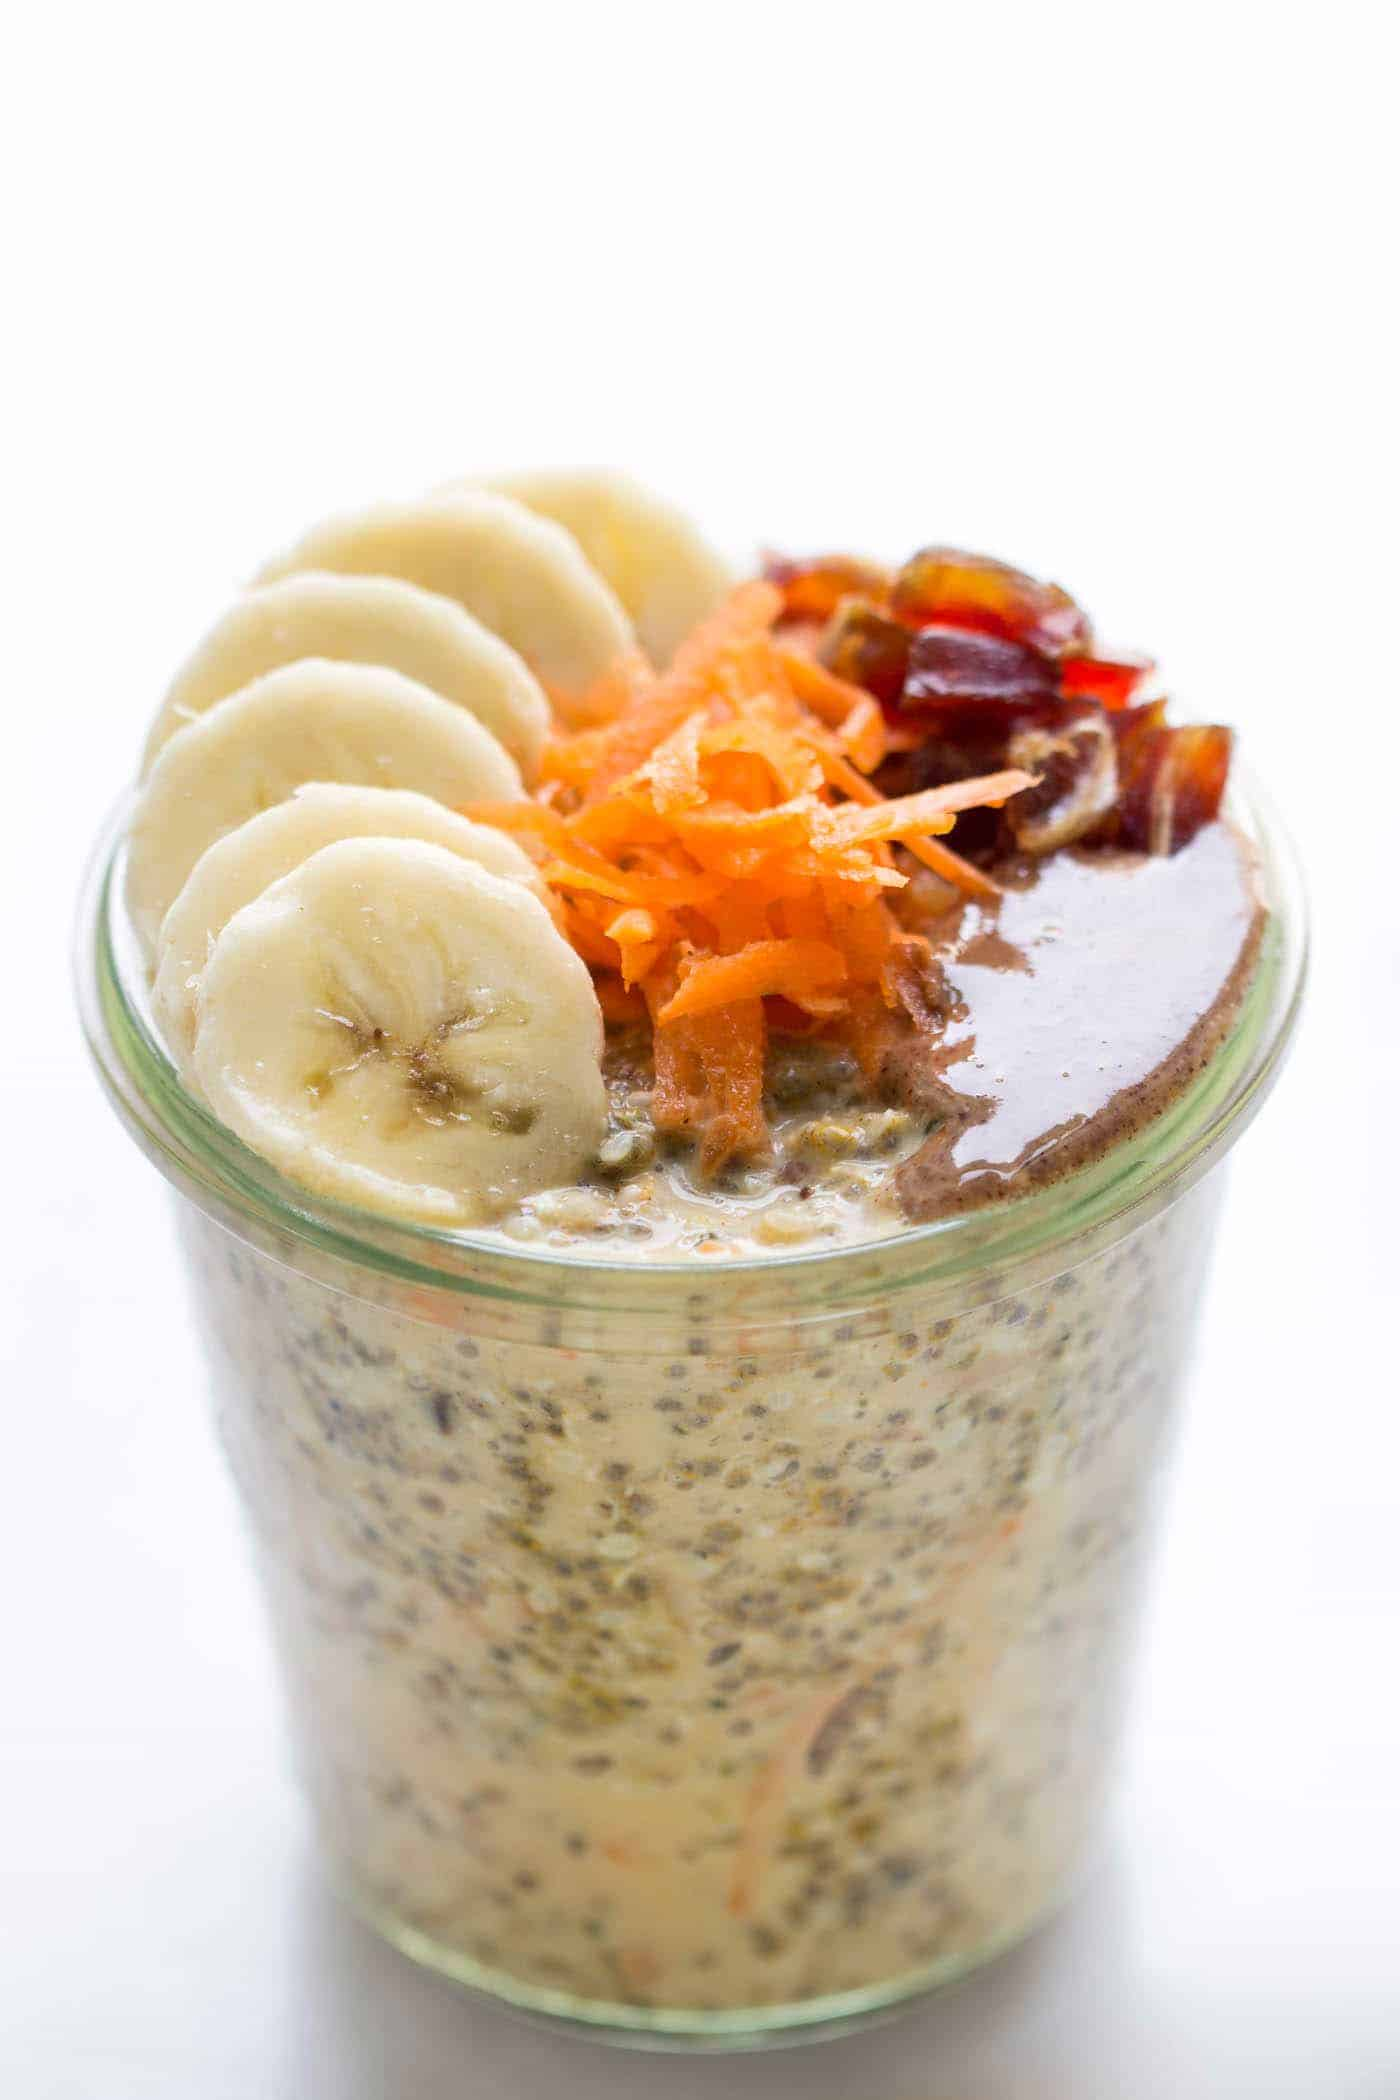 Carrot Cake Chia Pudding...with 12 grams of protein per serving WITHOUT the use of any protein powders! [vegan]